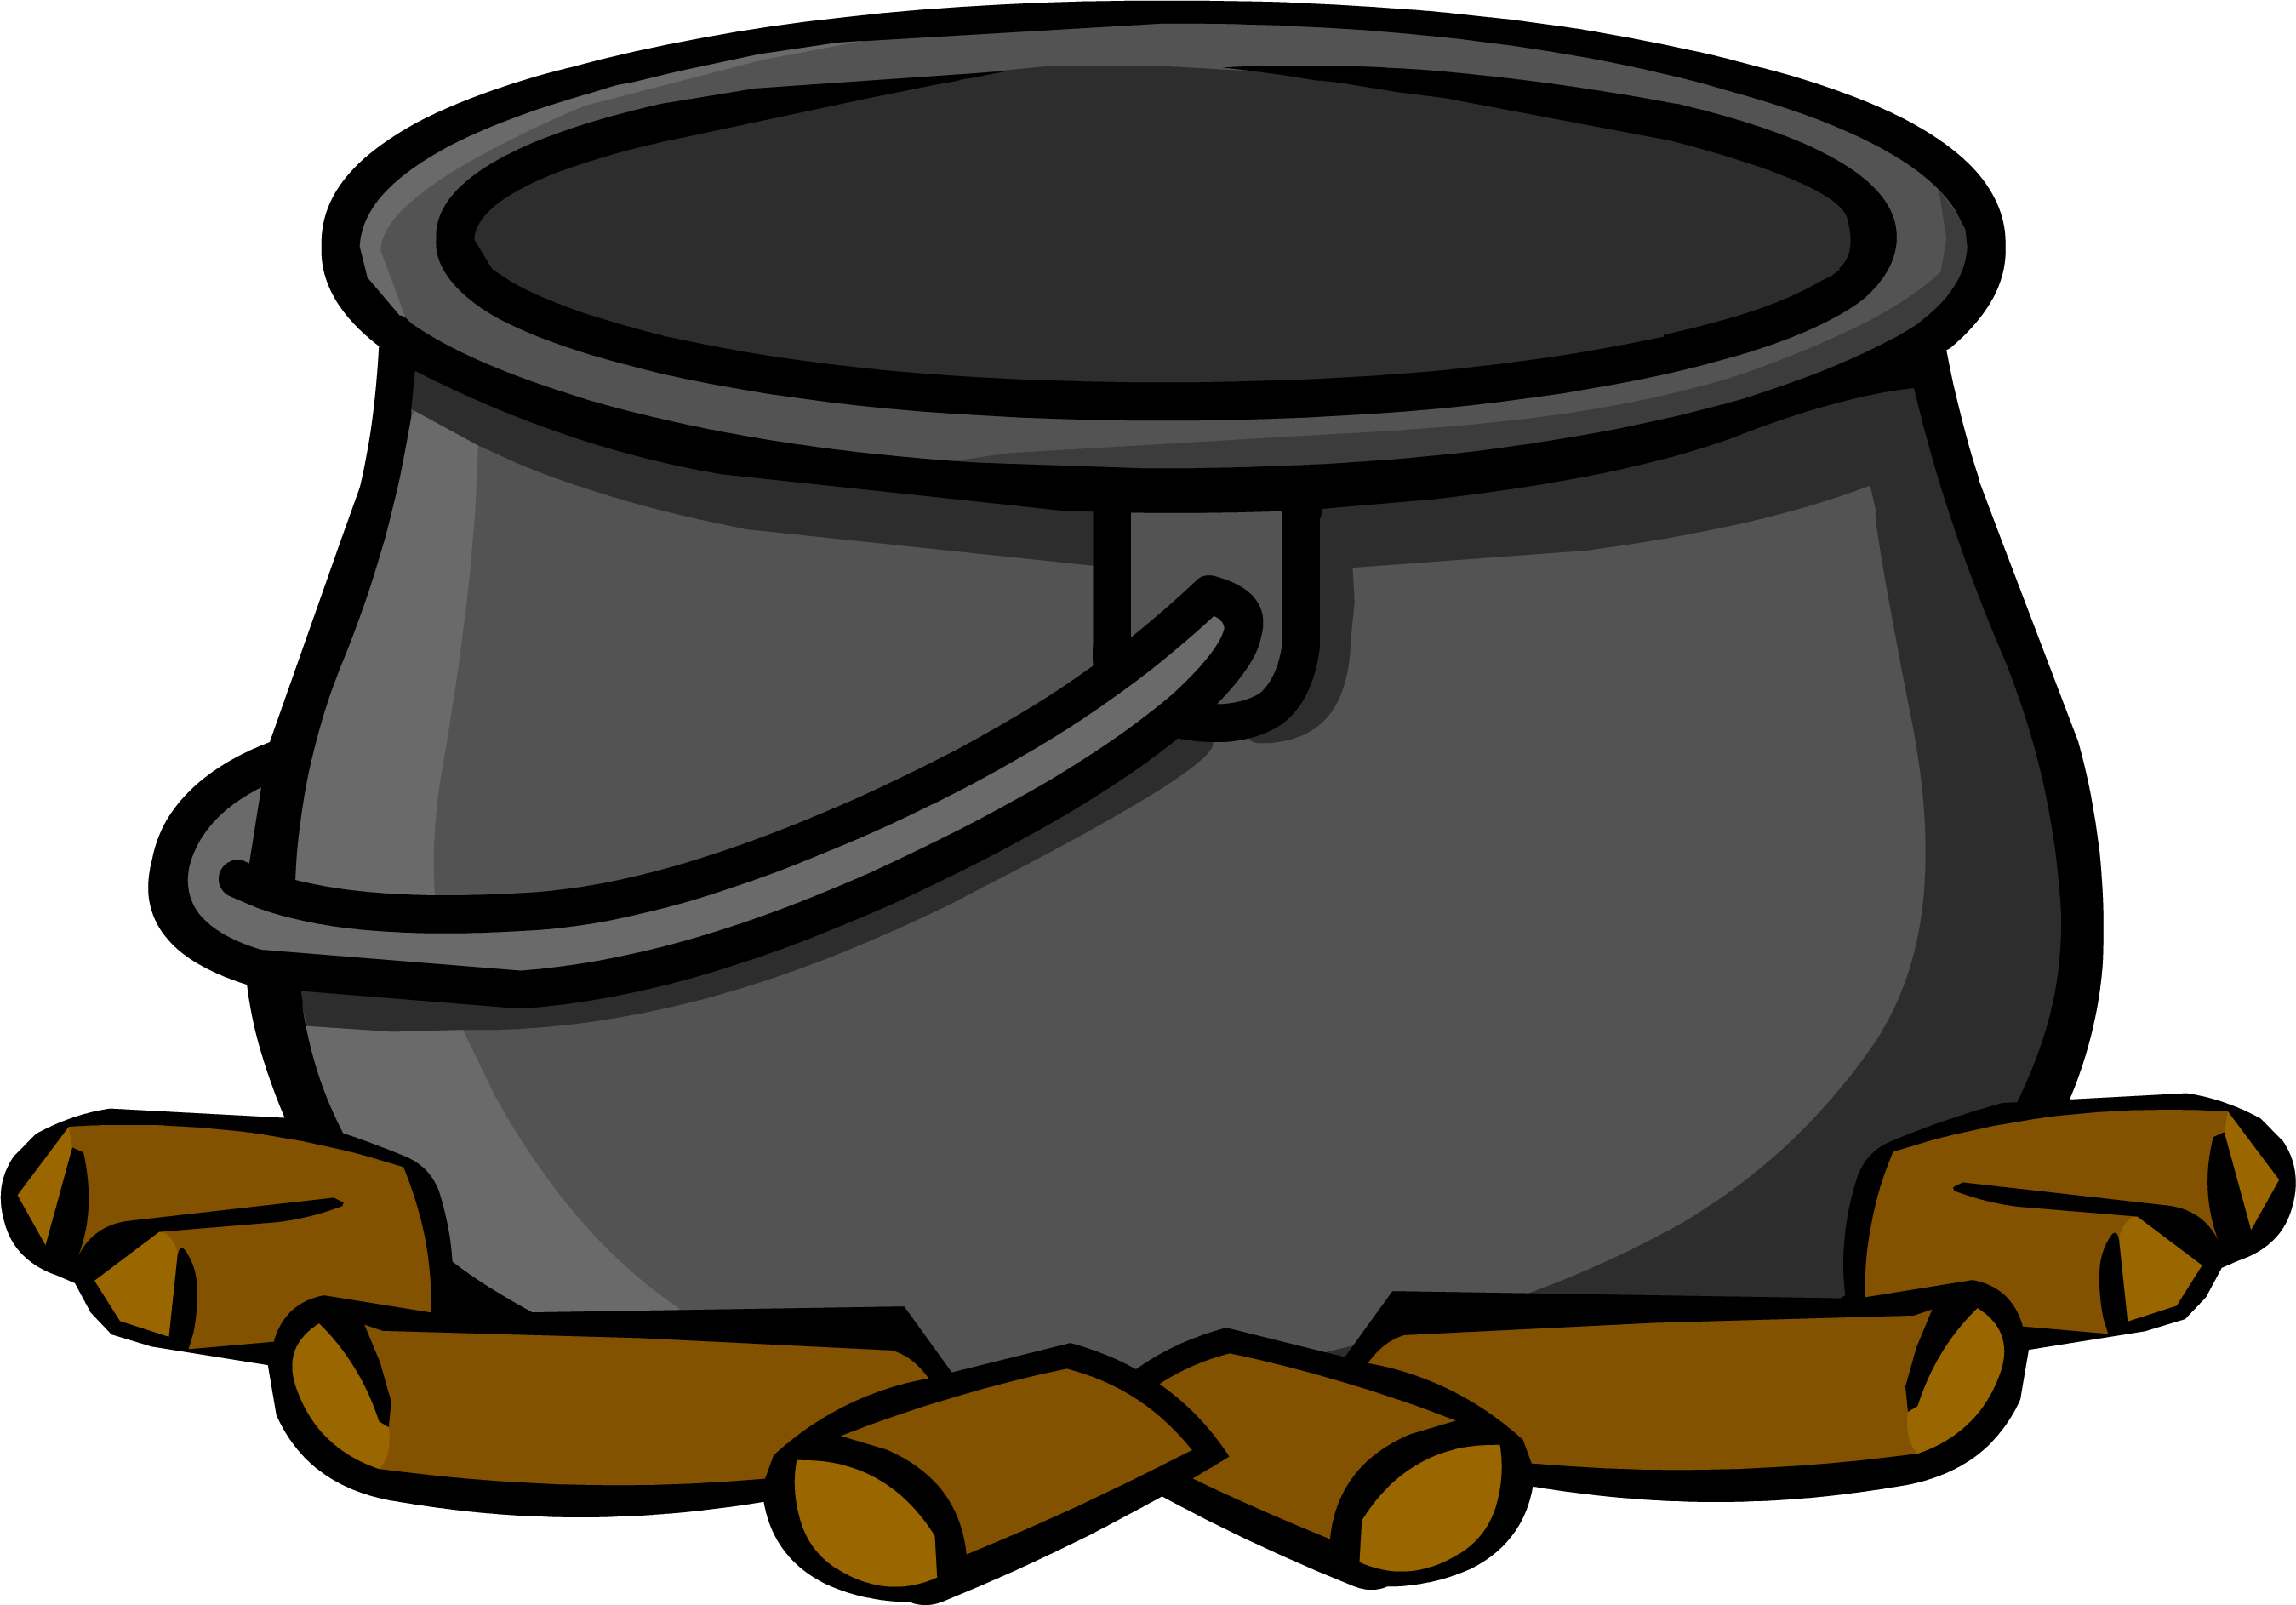 Cauldron clipart empty, Cauldron empty Transparent FREE for.